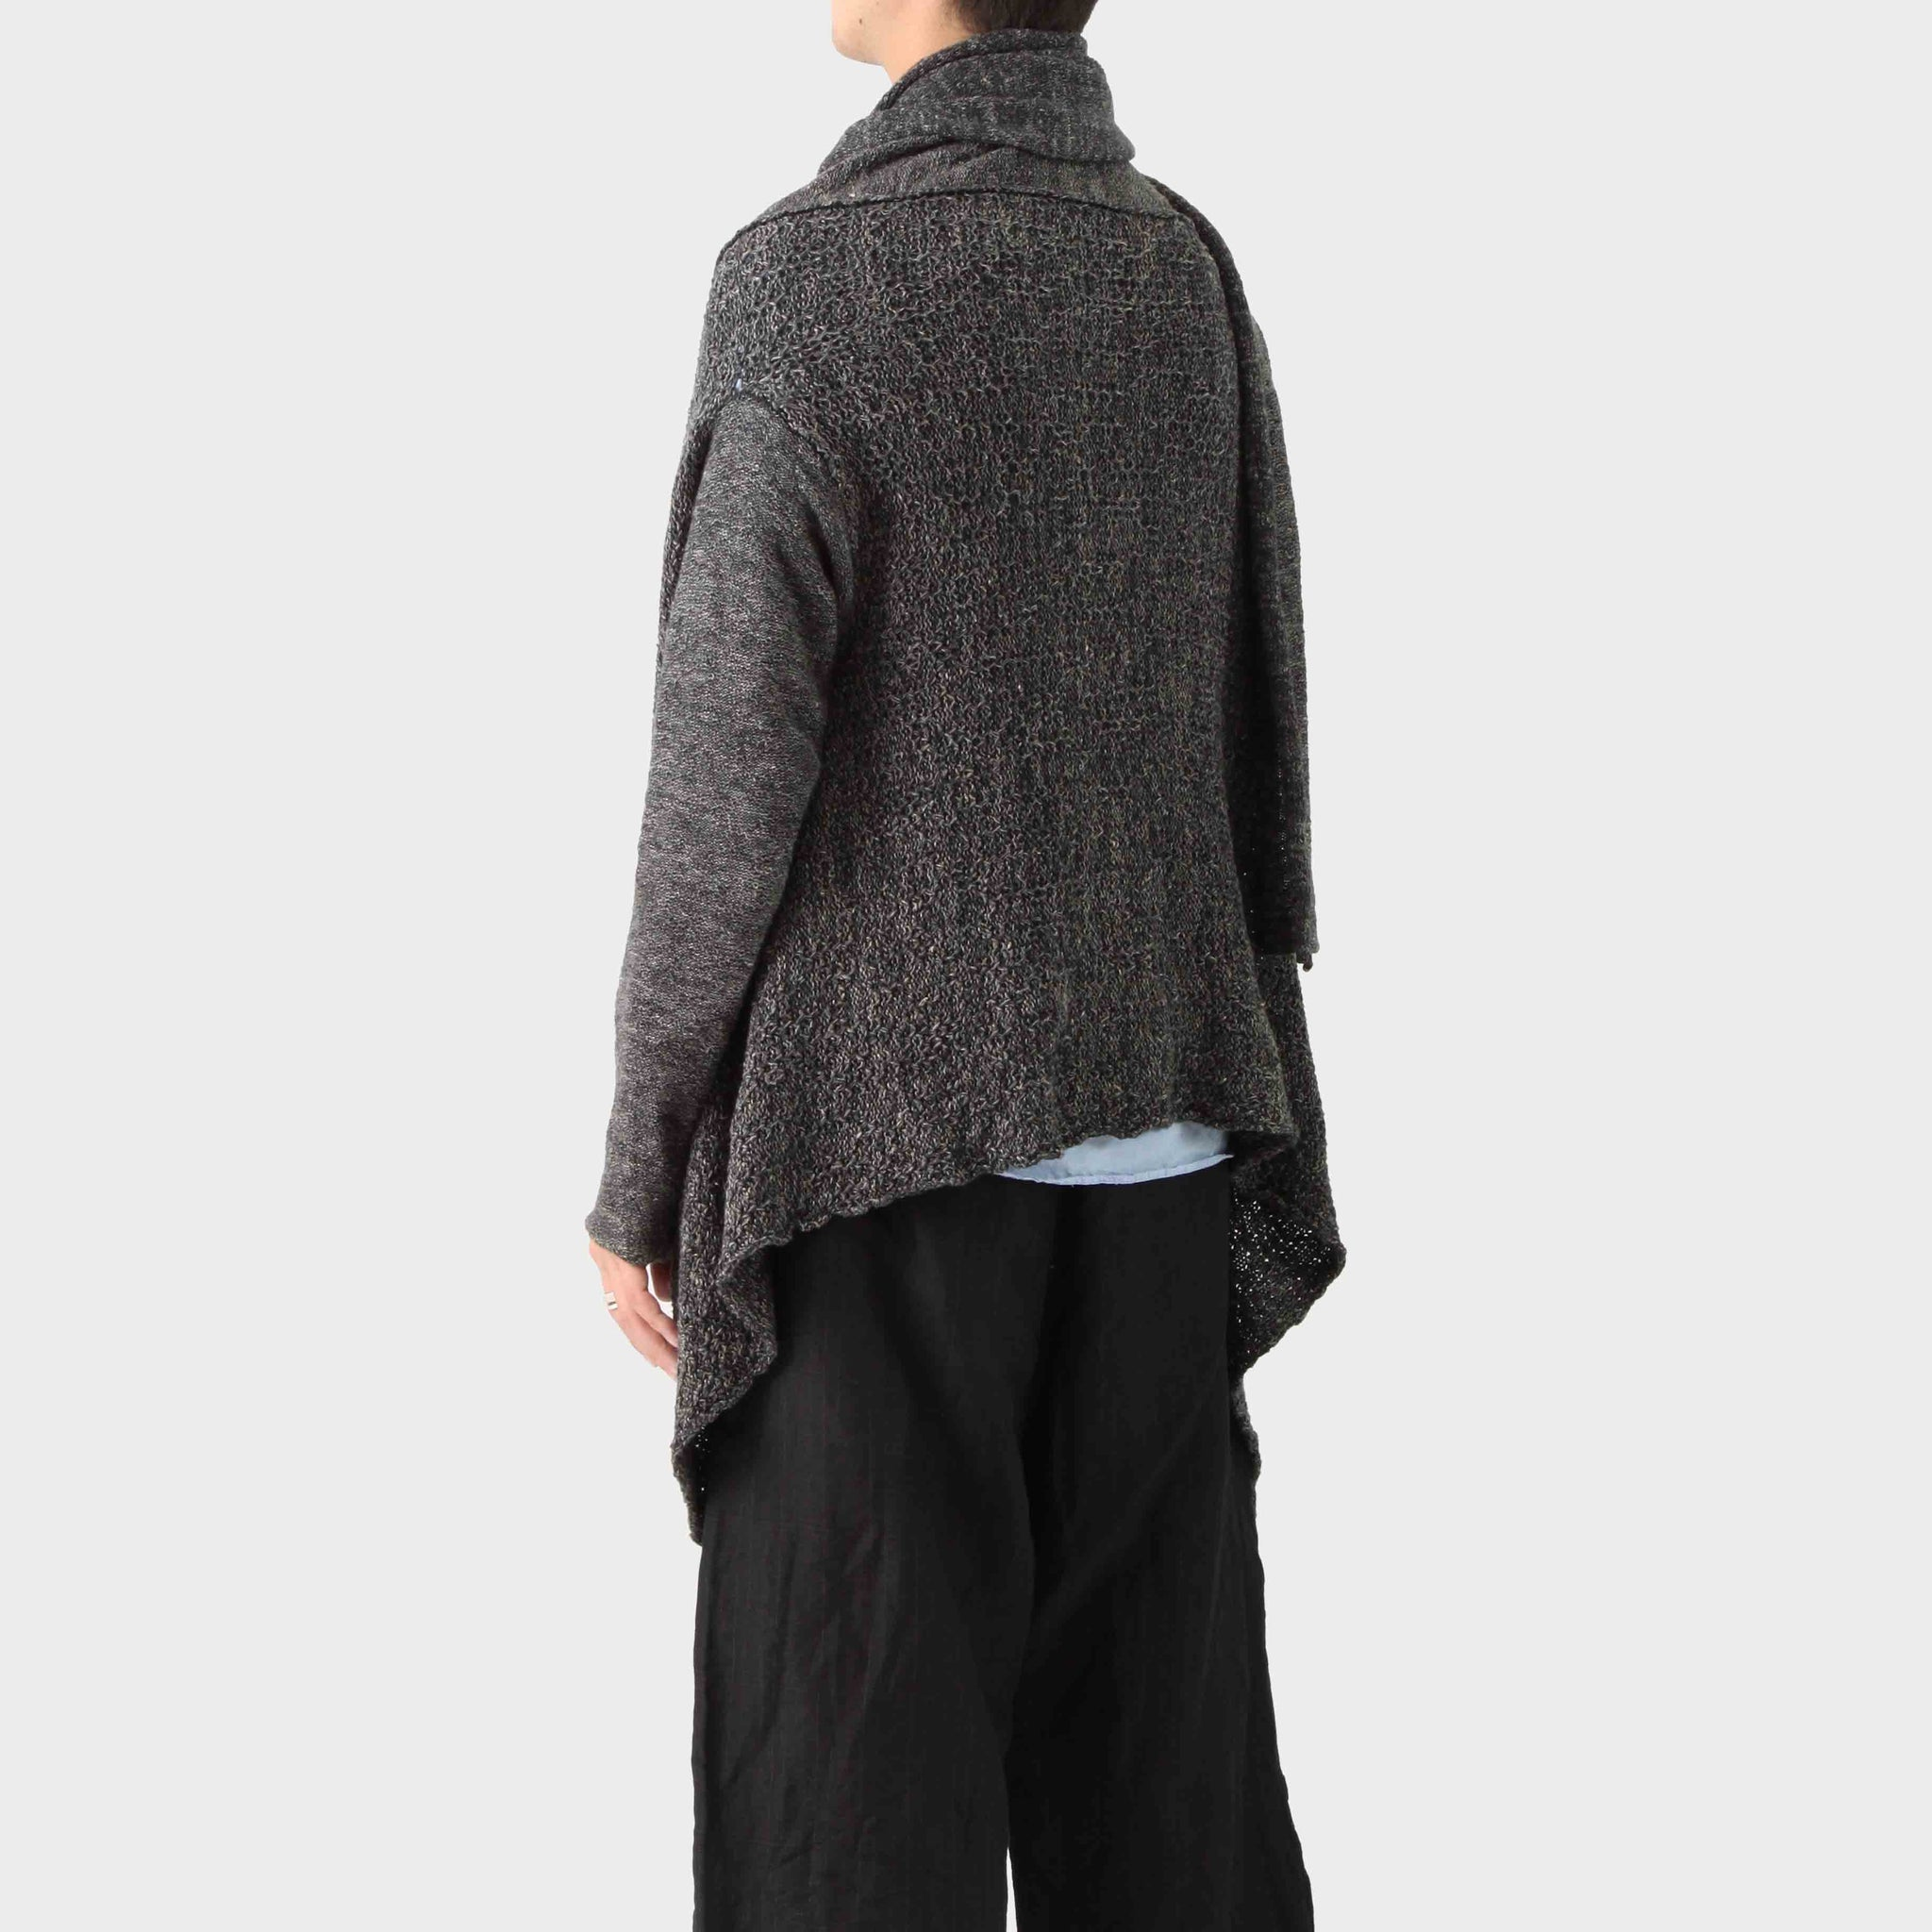 Daniel Andresen Knitted Cardigan